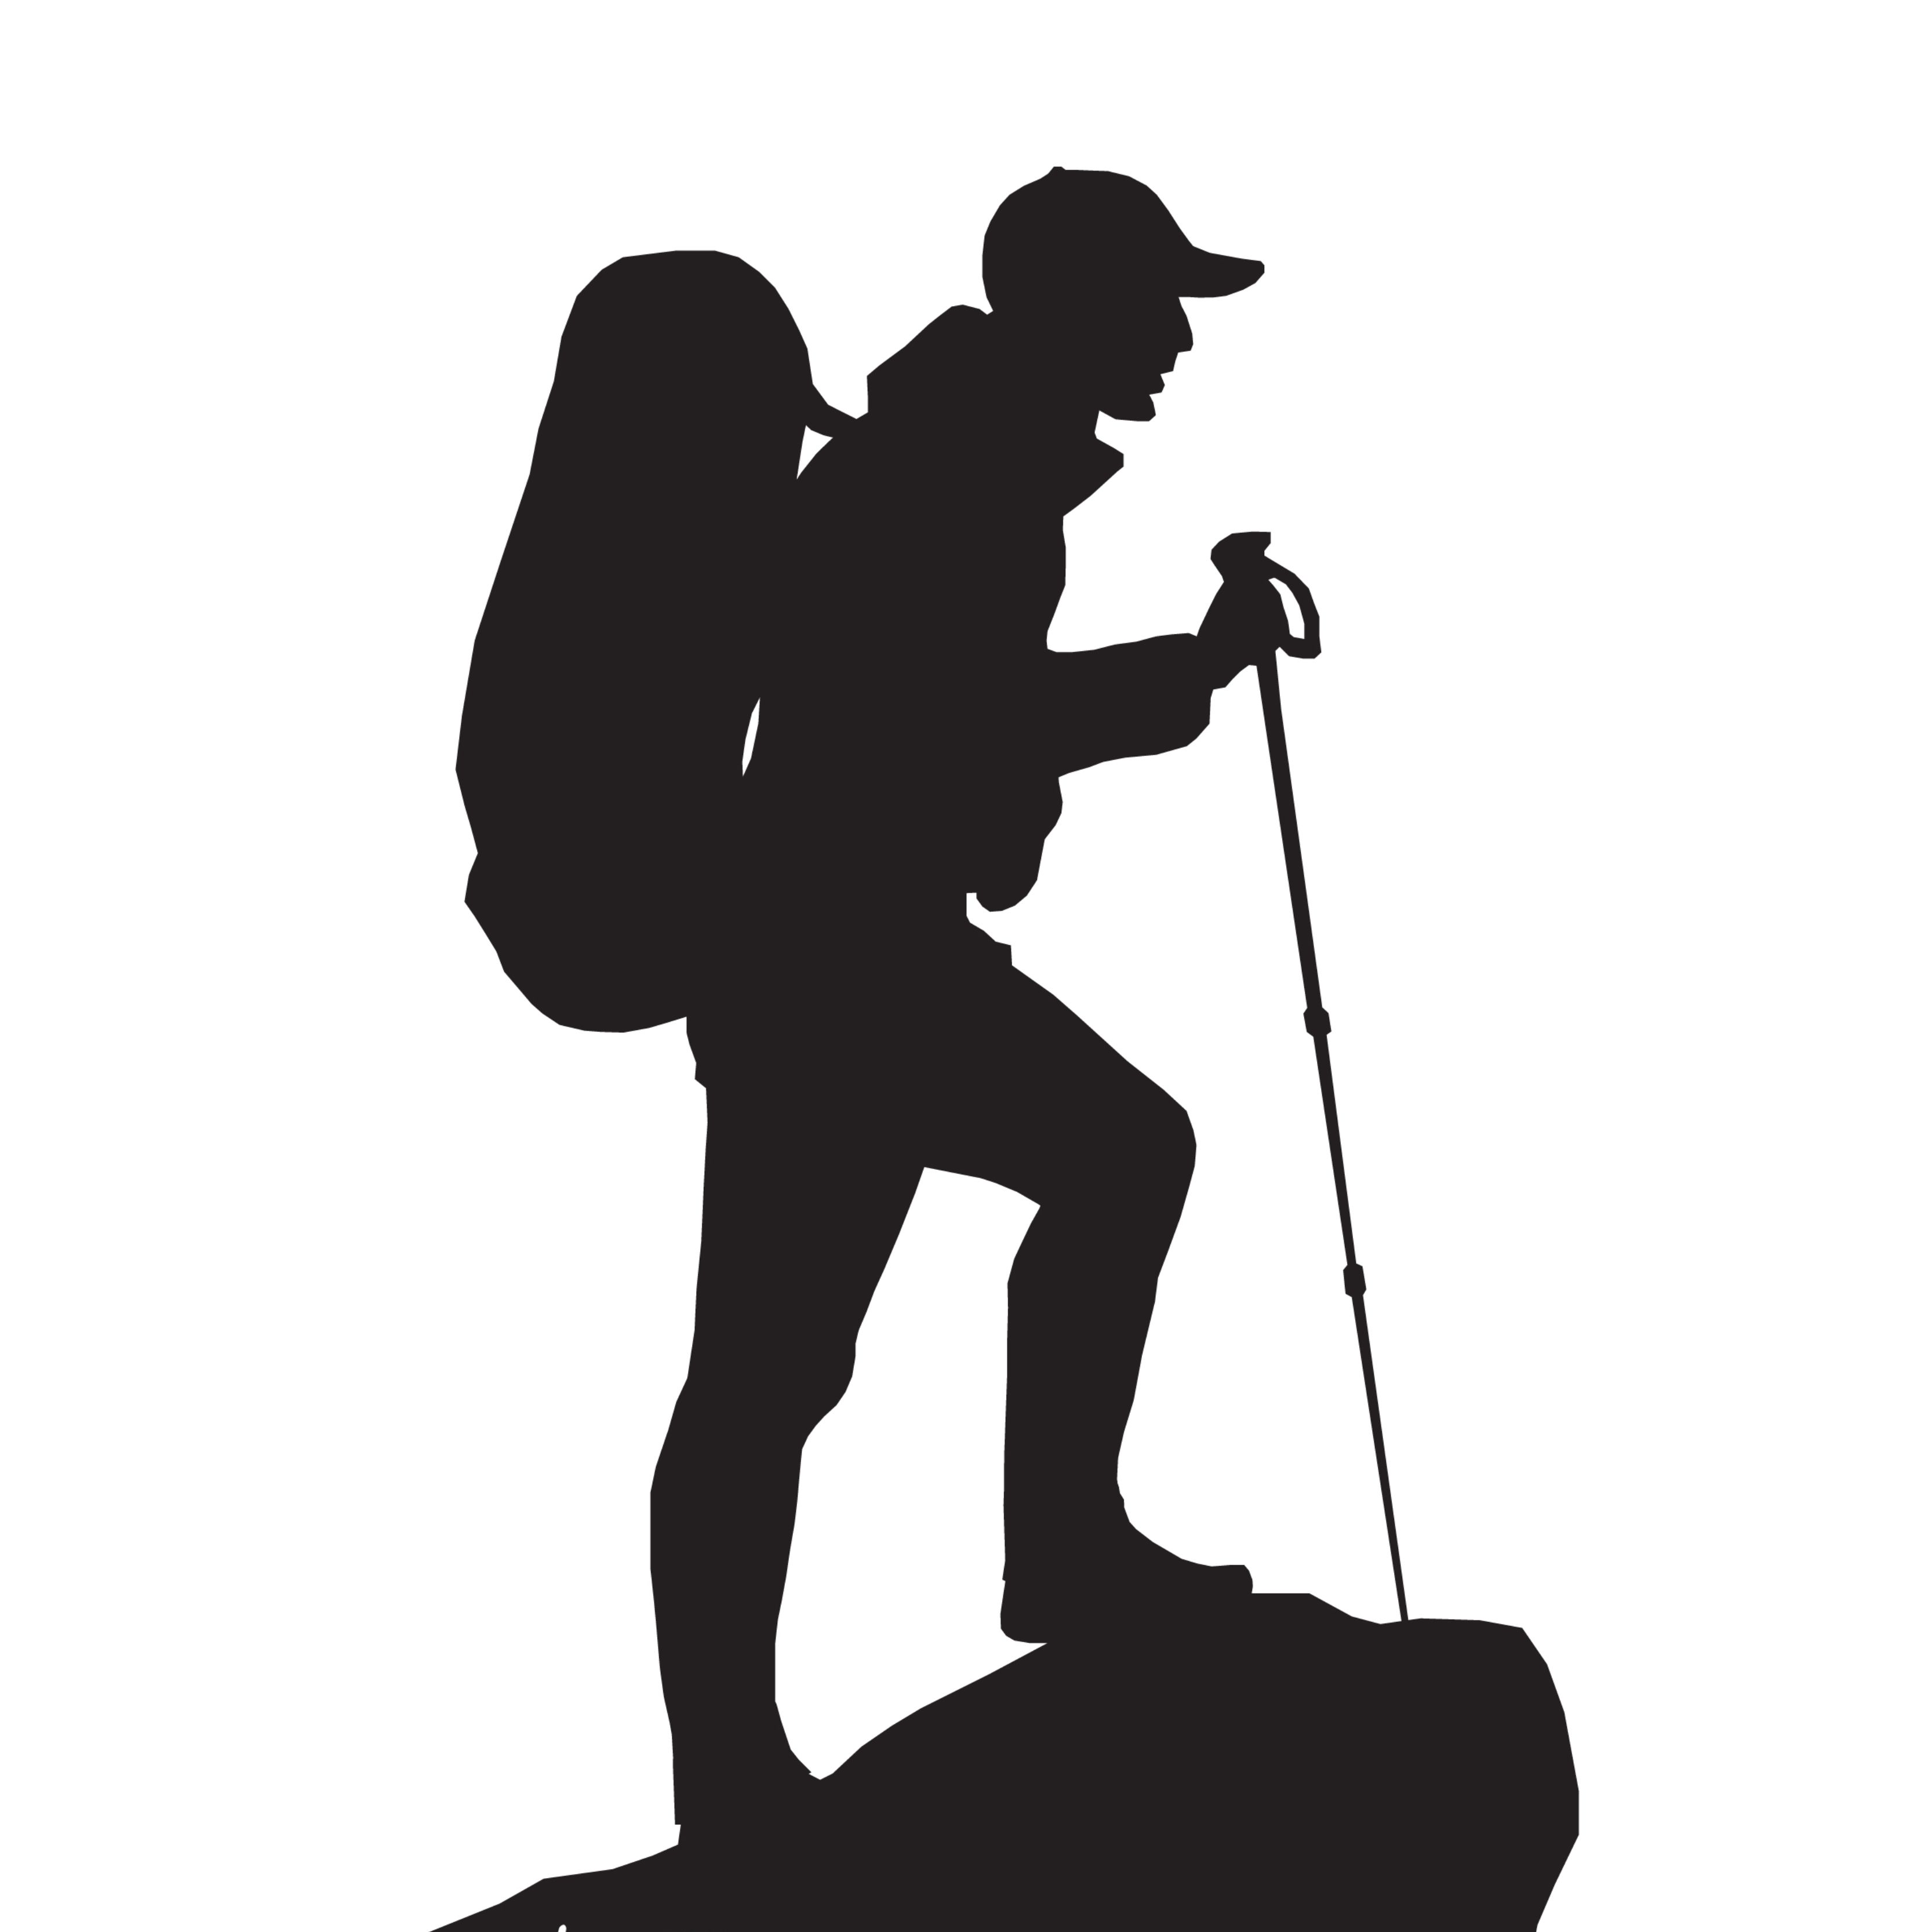 Satire Commentary Satirical Commentary Silhouette Hiking